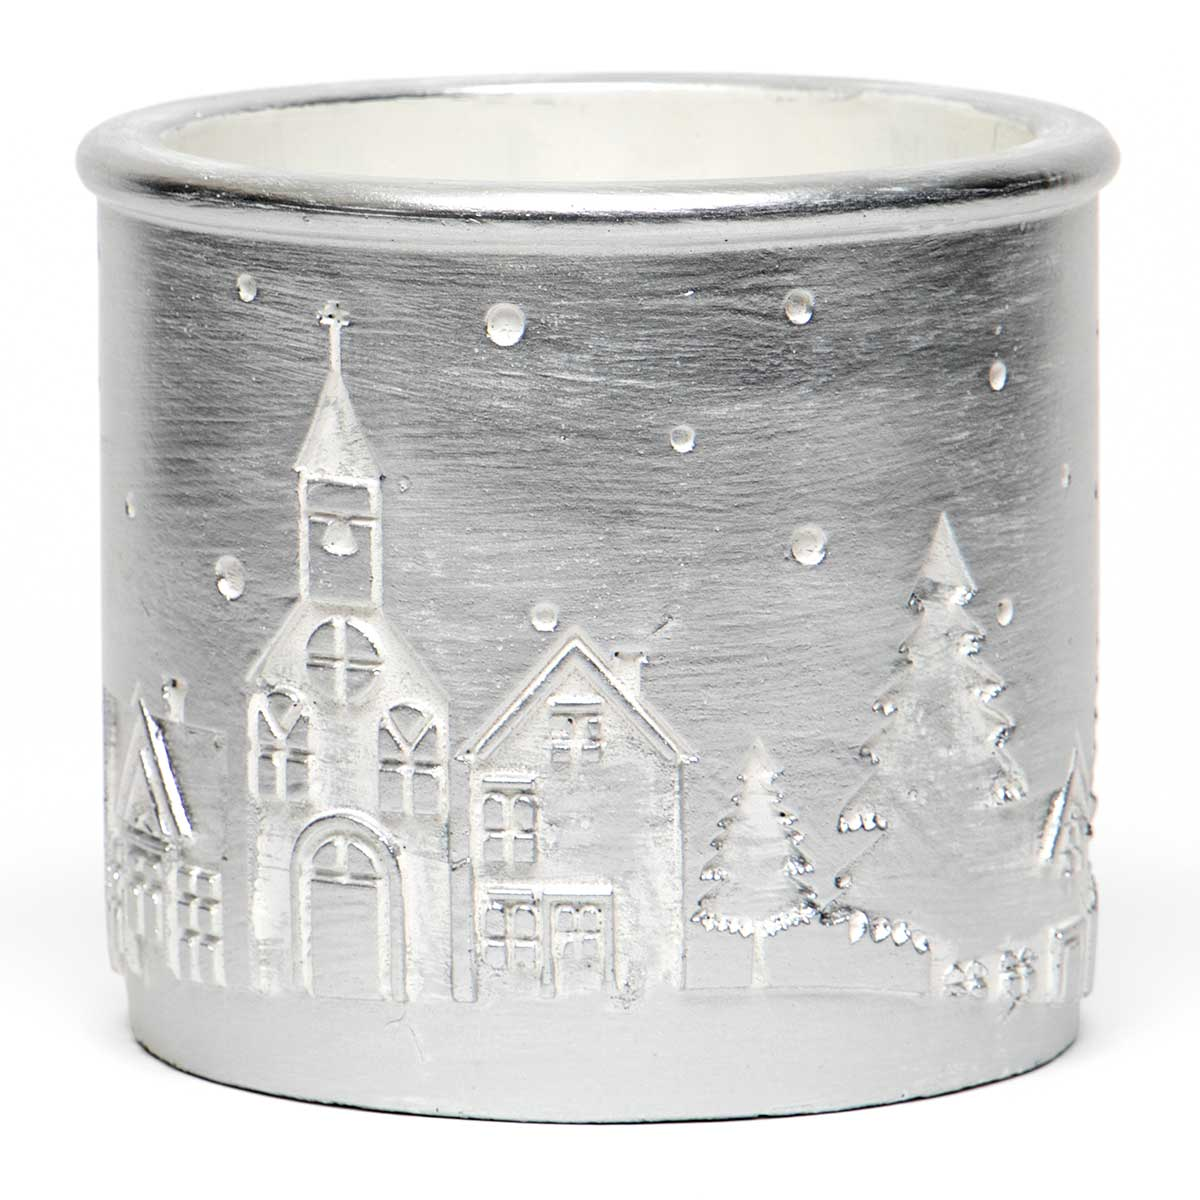 "SCENE CONCRETE POT SILVER WITH CHURCH AND TREES LARGE 5""X5"""